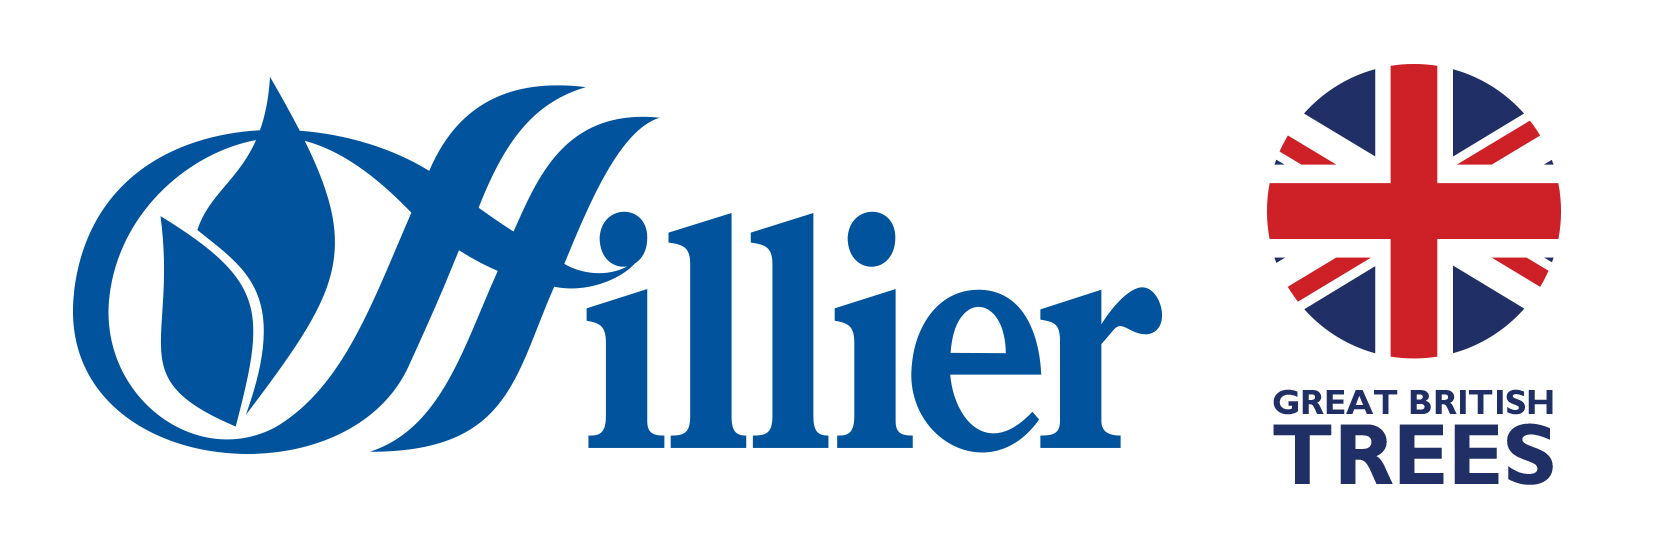 Hillier-logo-and-trees